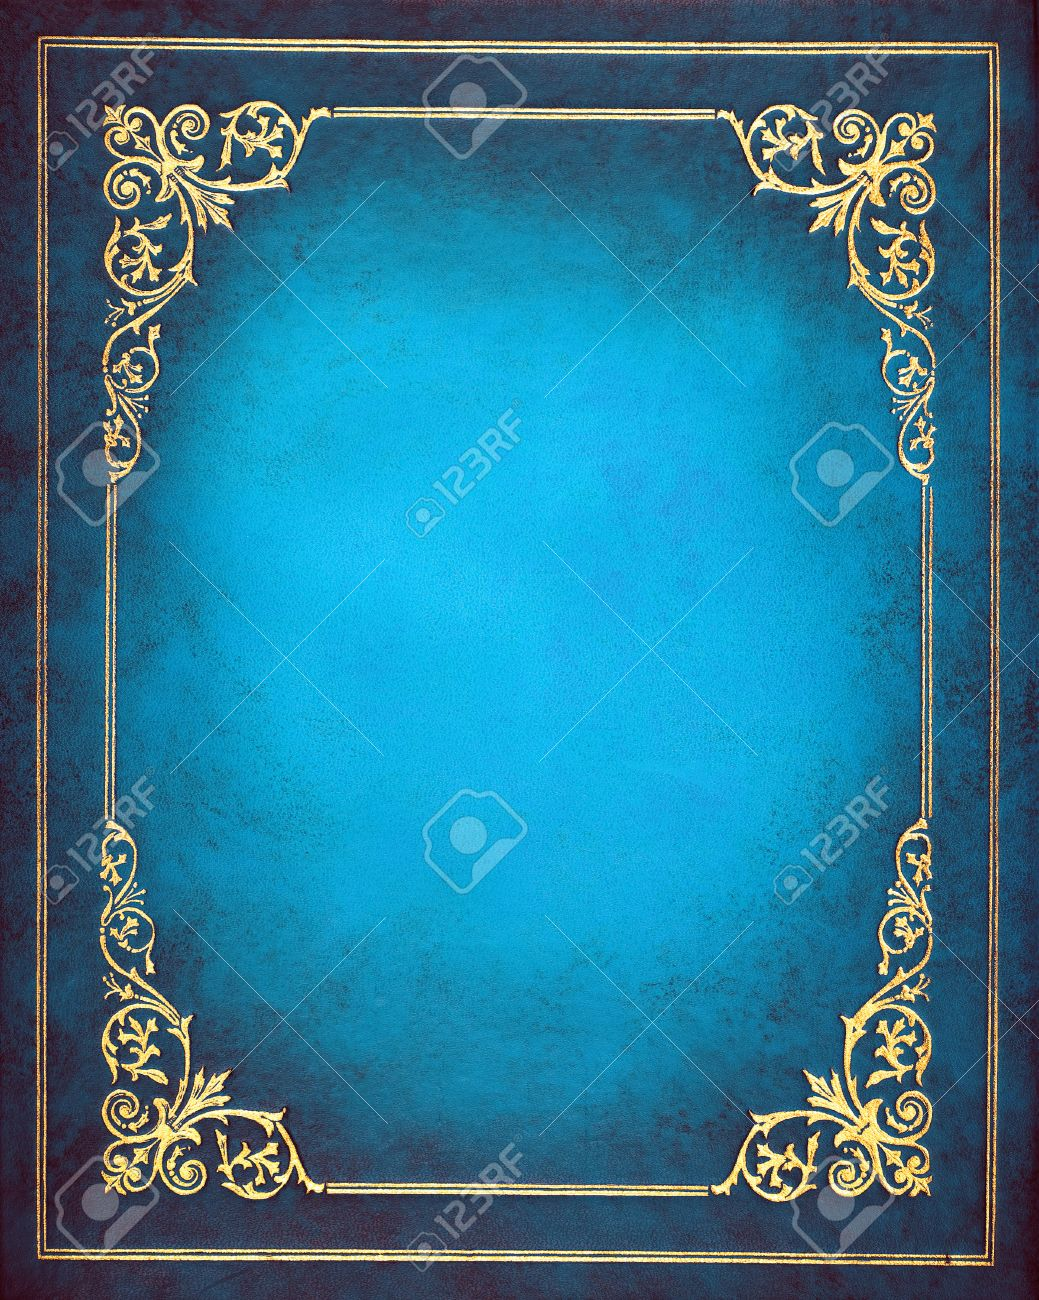 Old Book Cover Stock Photos & Pictures. Royalty Free Old Book ...